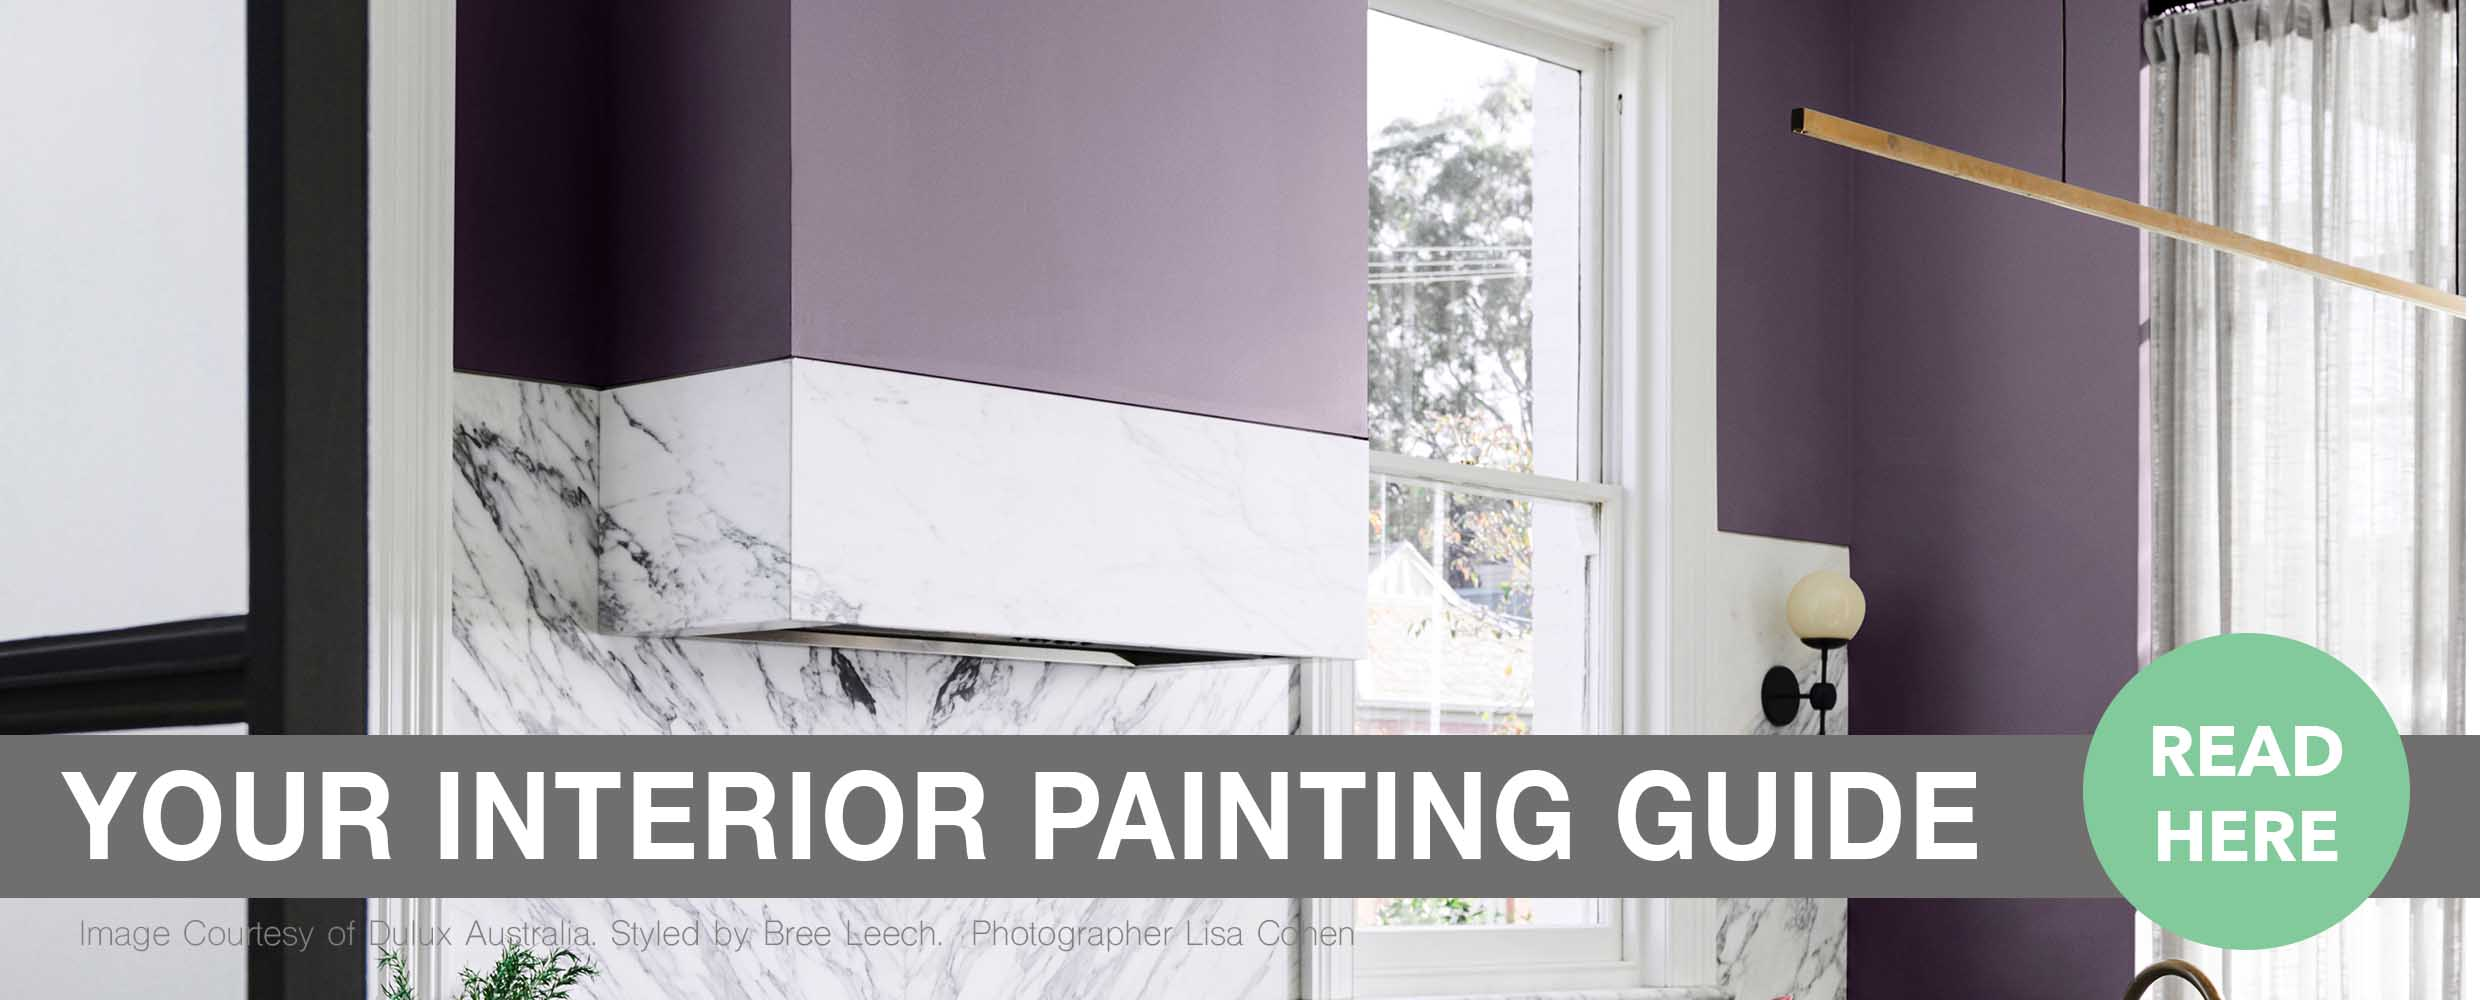 Home-Interior-Painting-Guide - QUICK-YOUR-INTERIOR-PAINTING-GUIDE